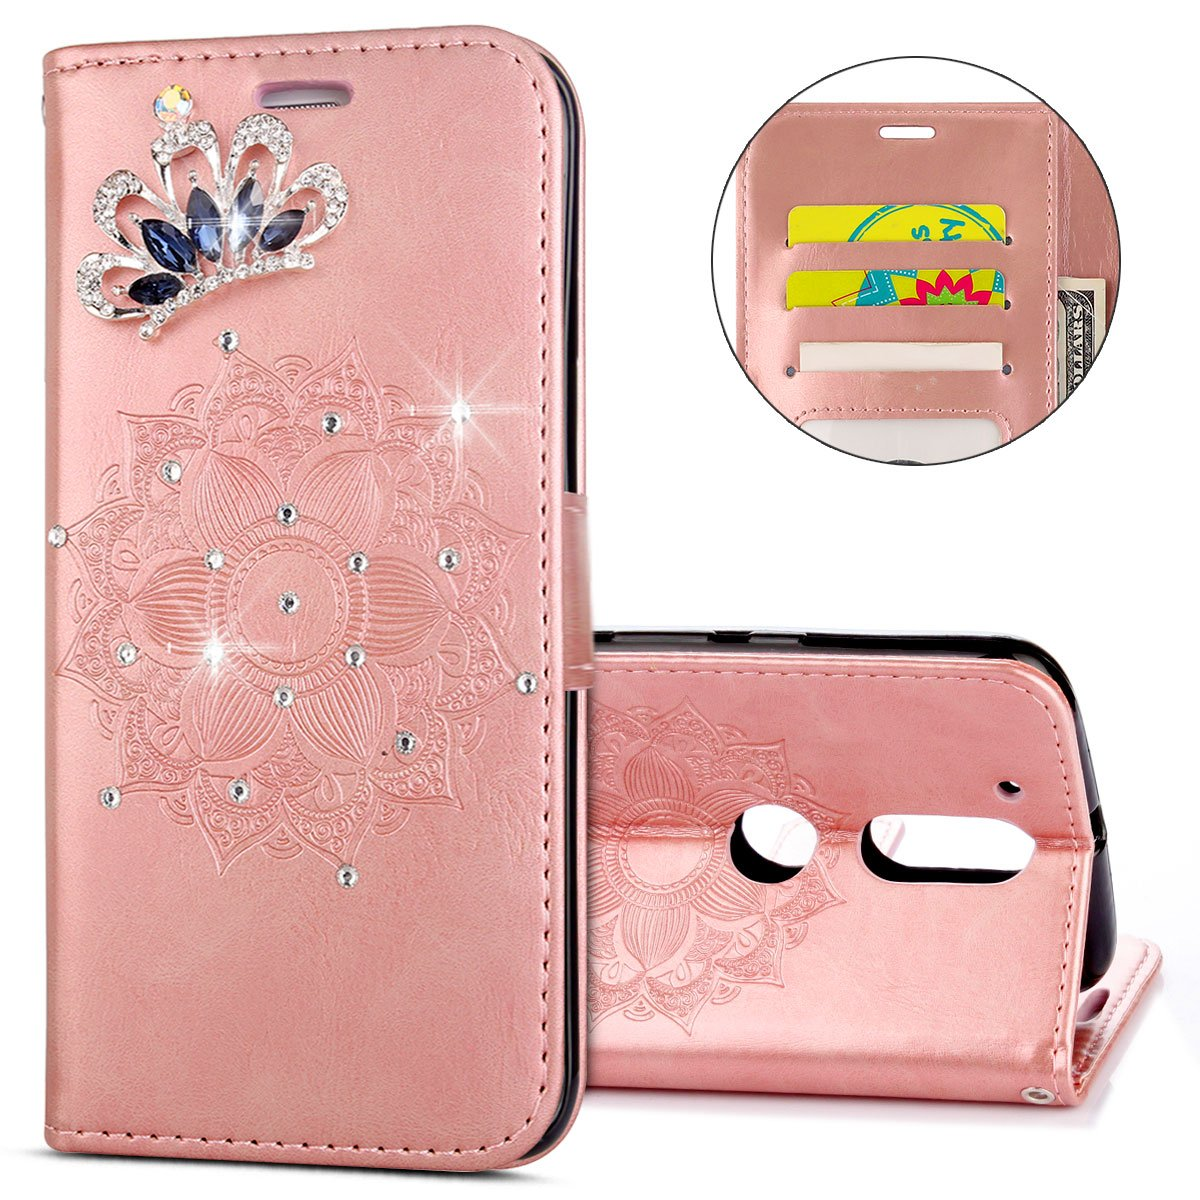 IKASEFU MOTO G4,MOTO G4 Plus Case,Clear Crown Rhinestone Diamond Bling Glitter Wallet with Card Holder Emboss Mandala Floral Pu Leather Magnetic Flip Protective Cover for MOTO G4/G4 Plus,Rosa Gold